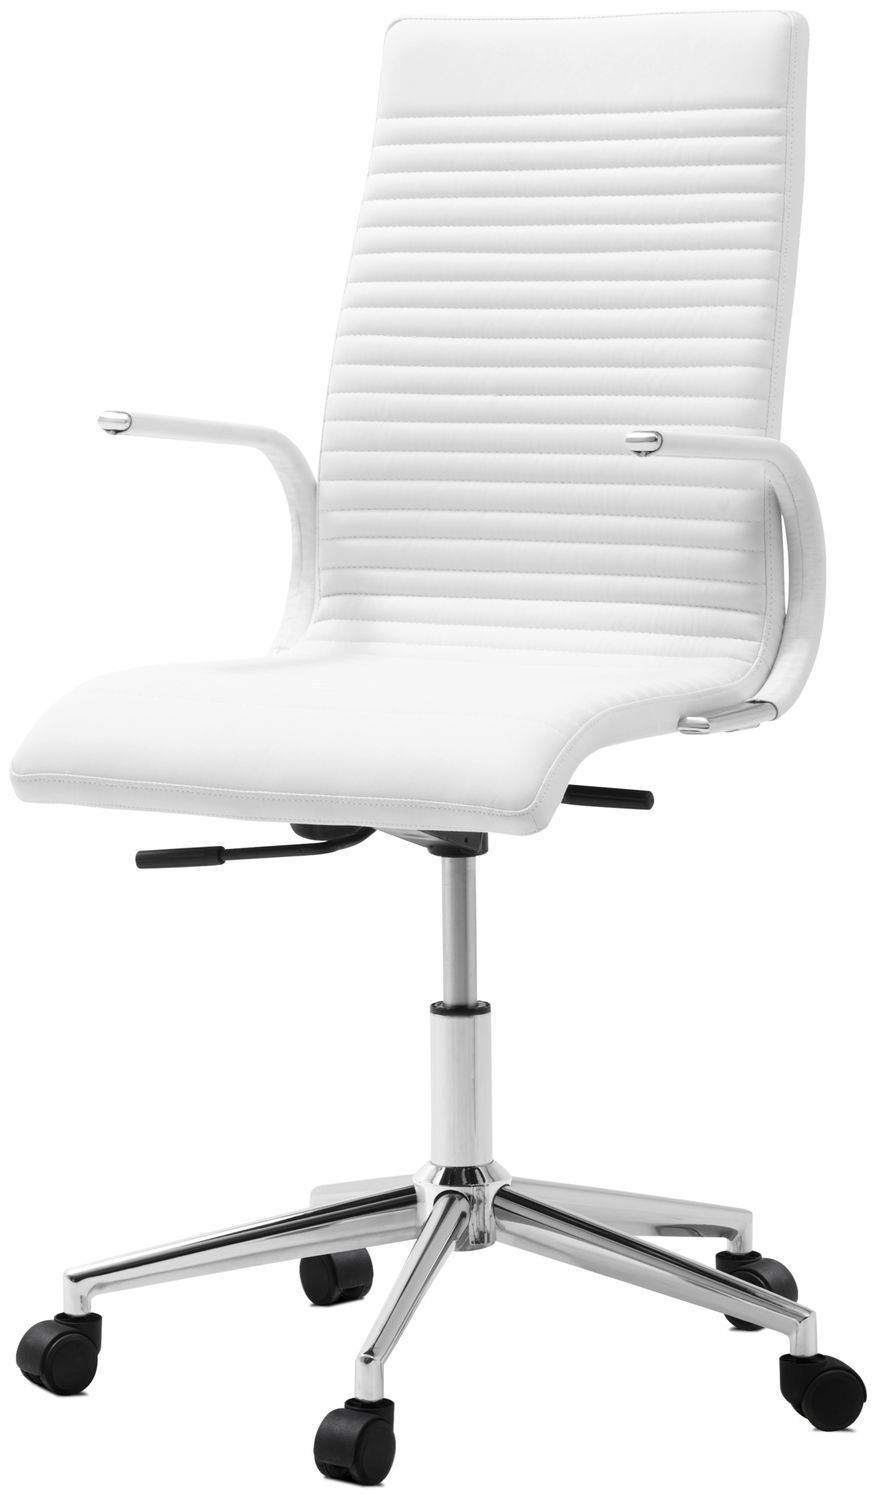 Contemporary Office Chair / Upholstered / With Armrests / On Casters    FERRARA